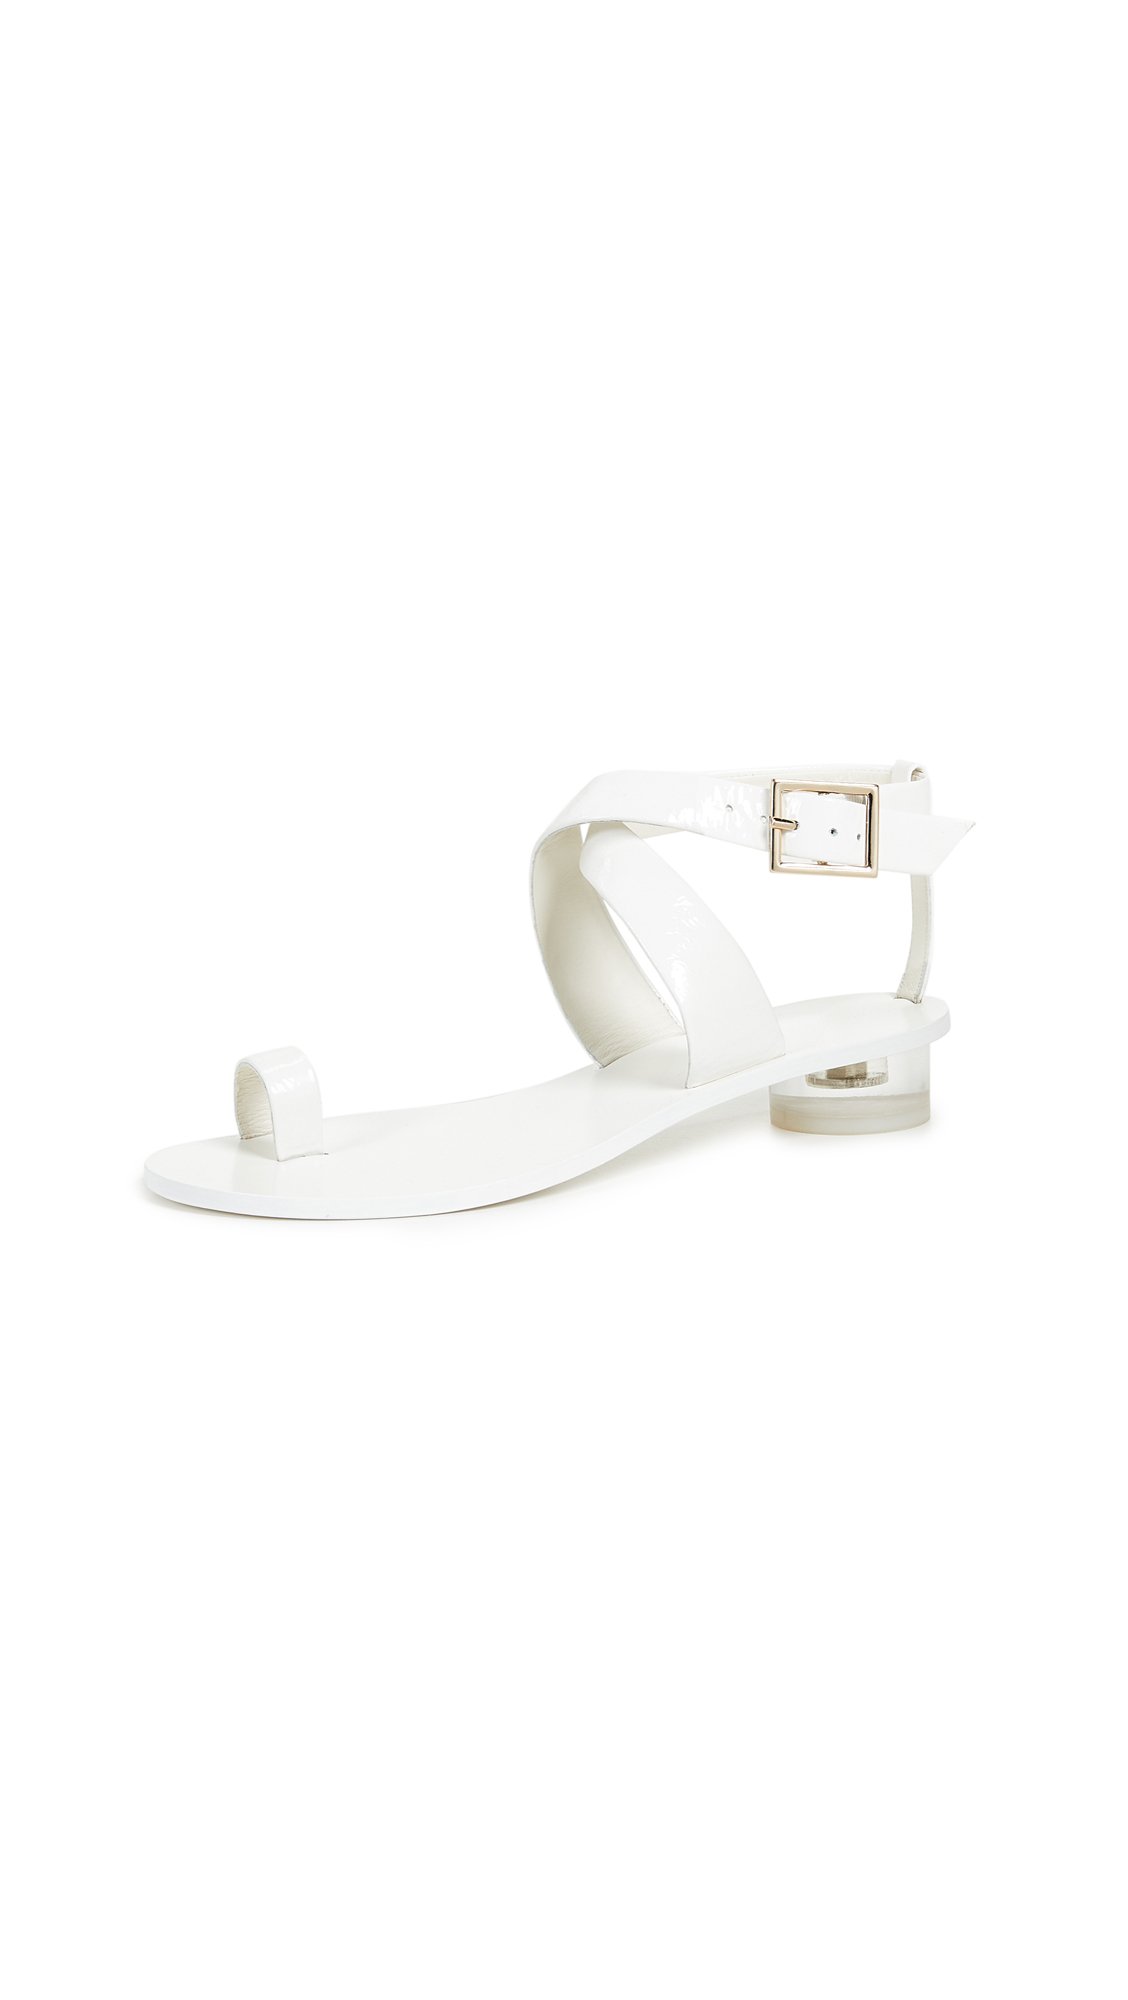 Tibi Hanson City Sandals In White/White